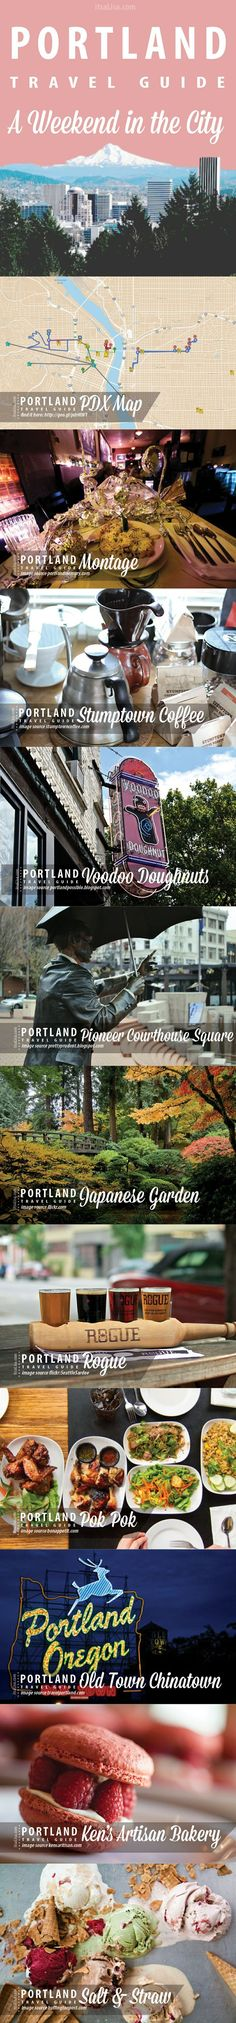 Portland City Guide - A Weekend in the City